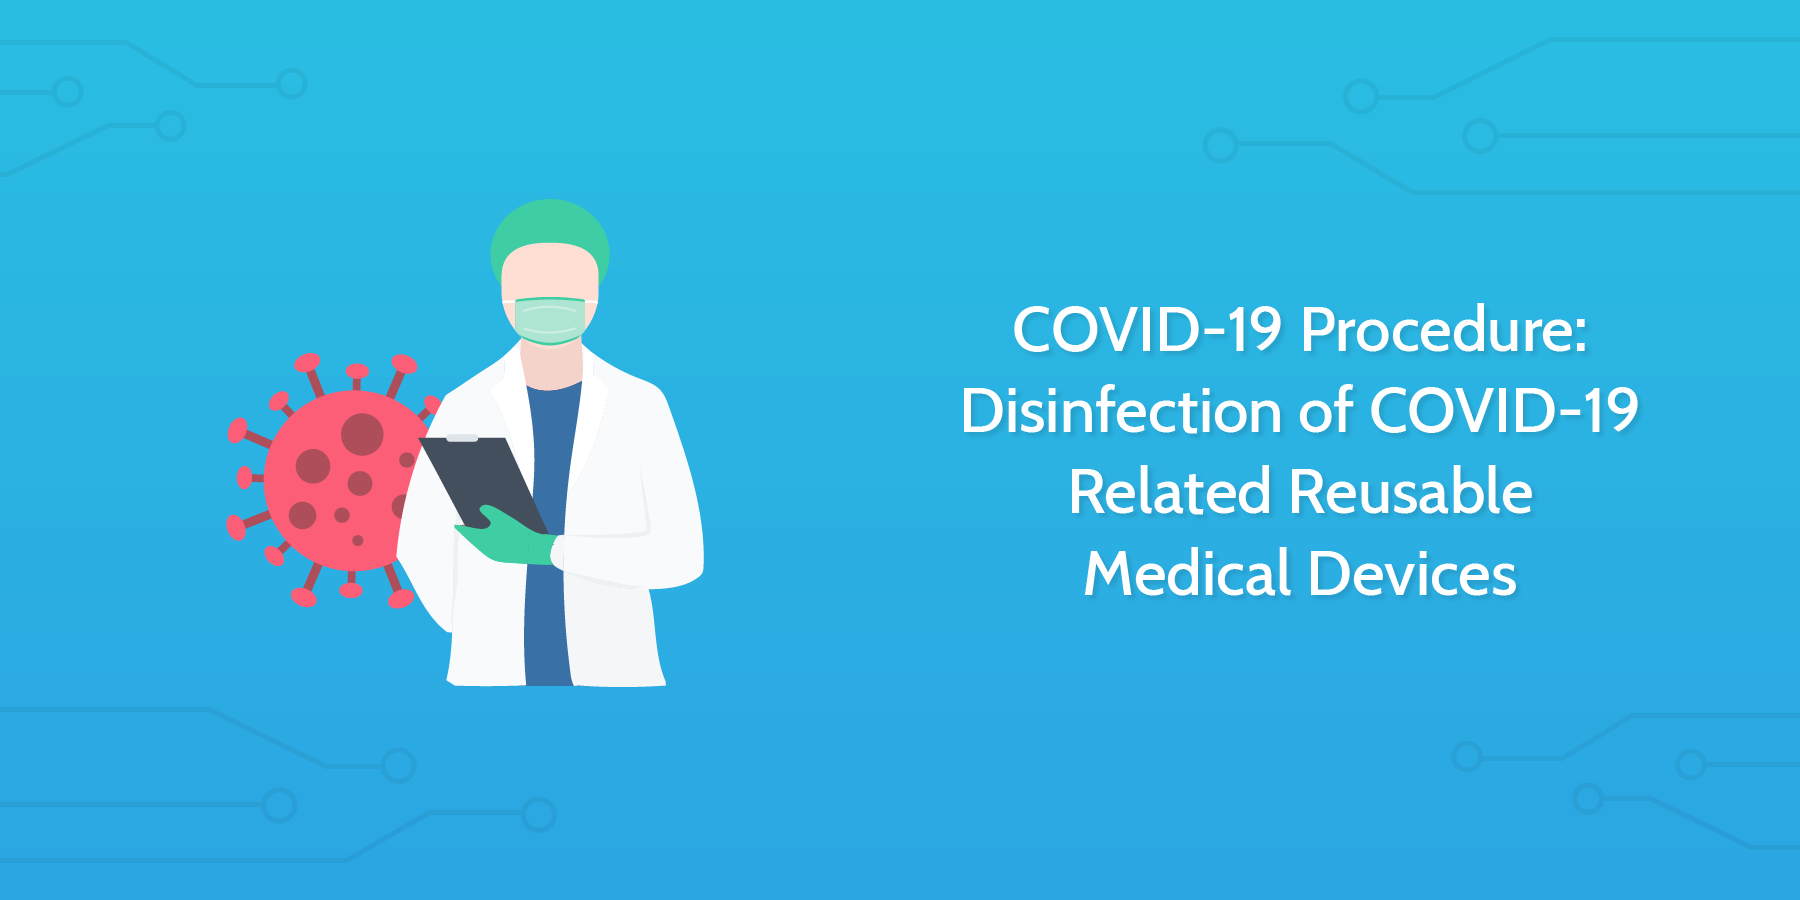 COVID-19 Procedure: Disinfection of COVID-19 Related Reusable Medical Devices